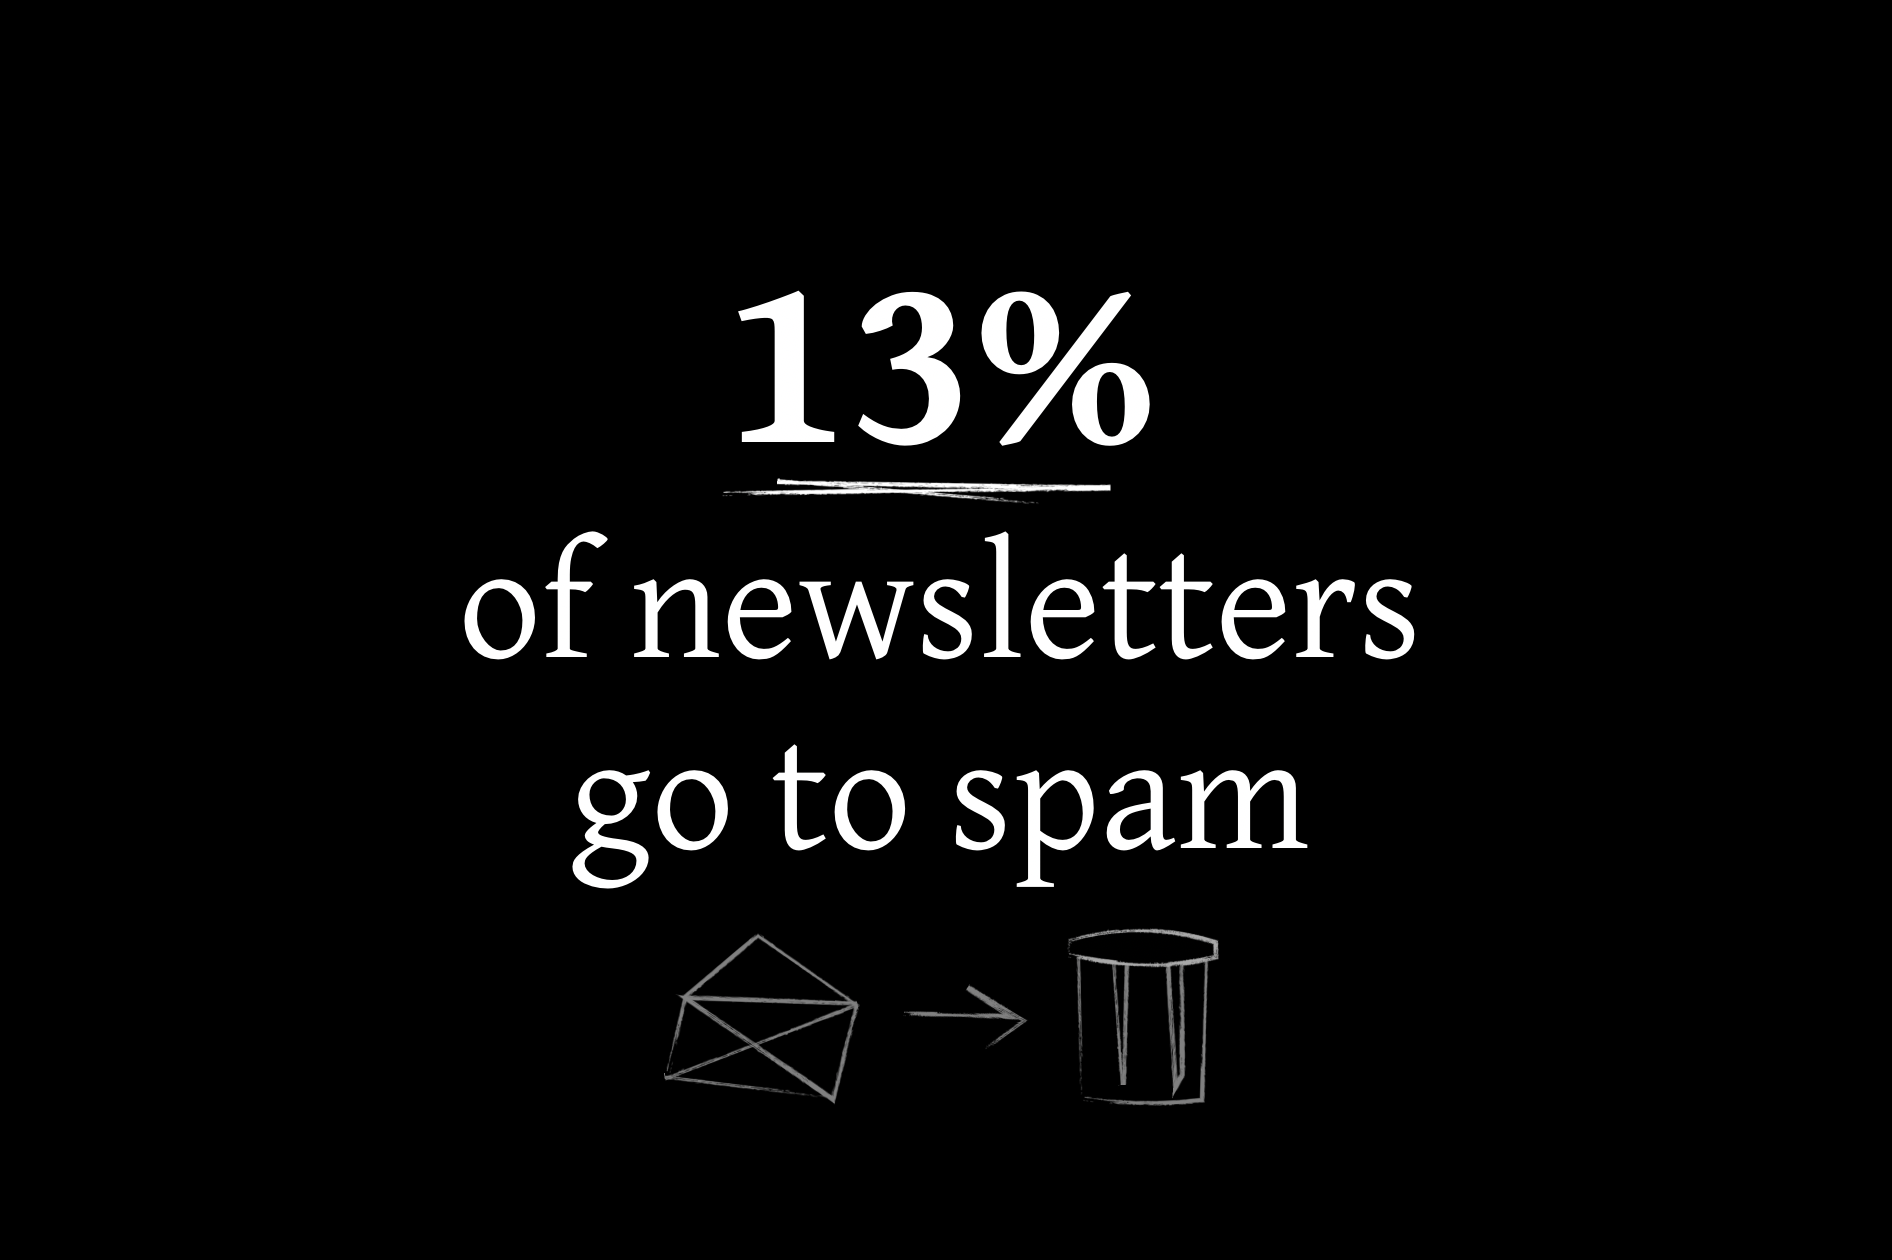 how to build a b2b newsletter stats